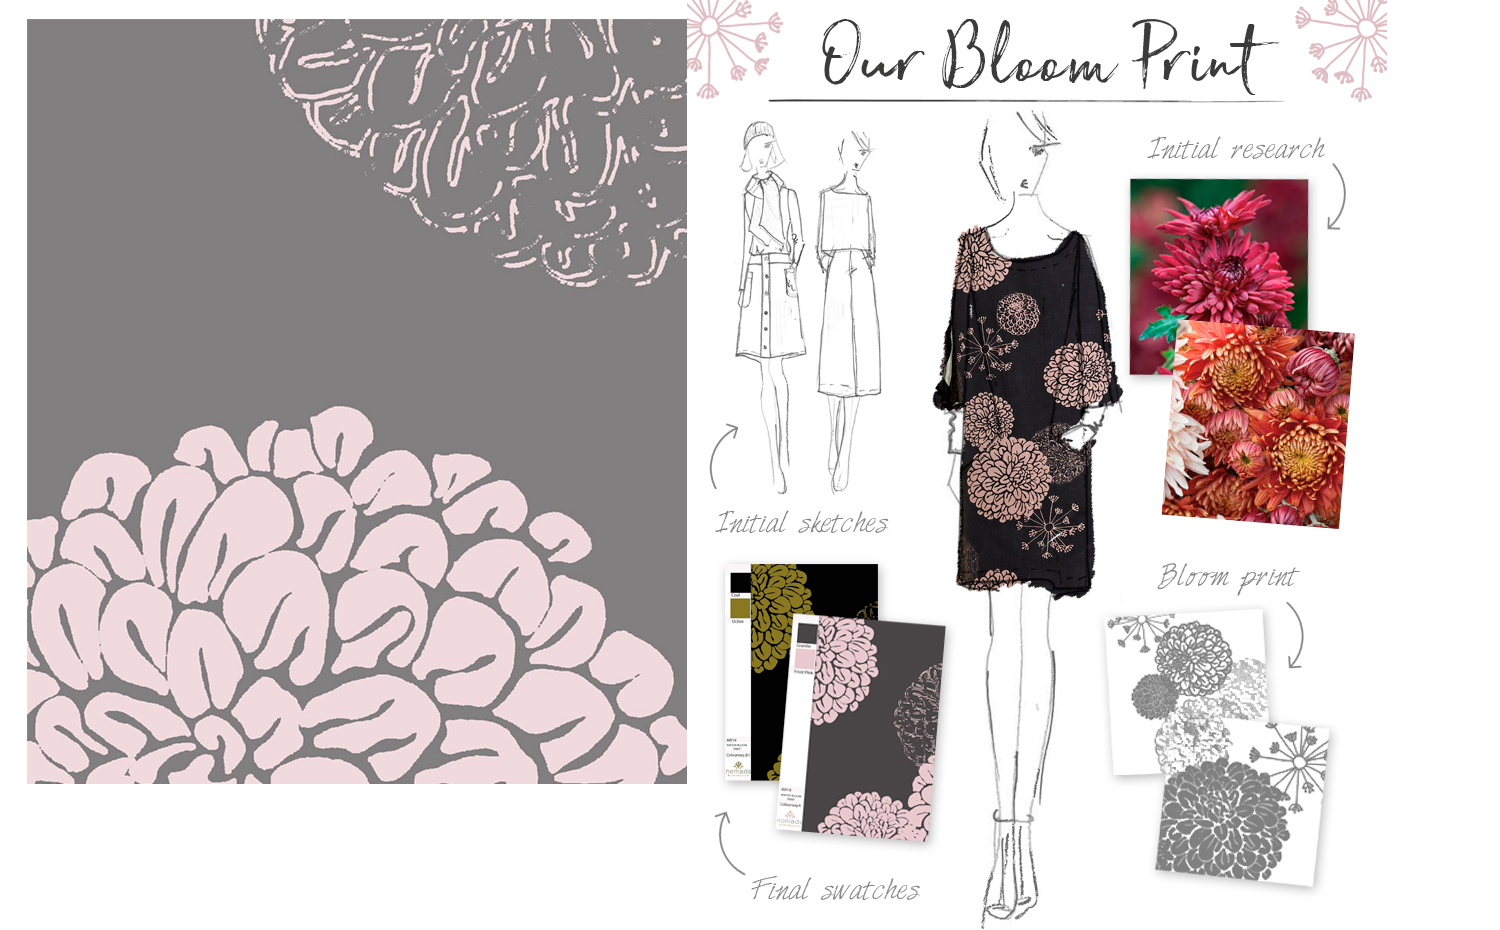 The design process of our Bloom print